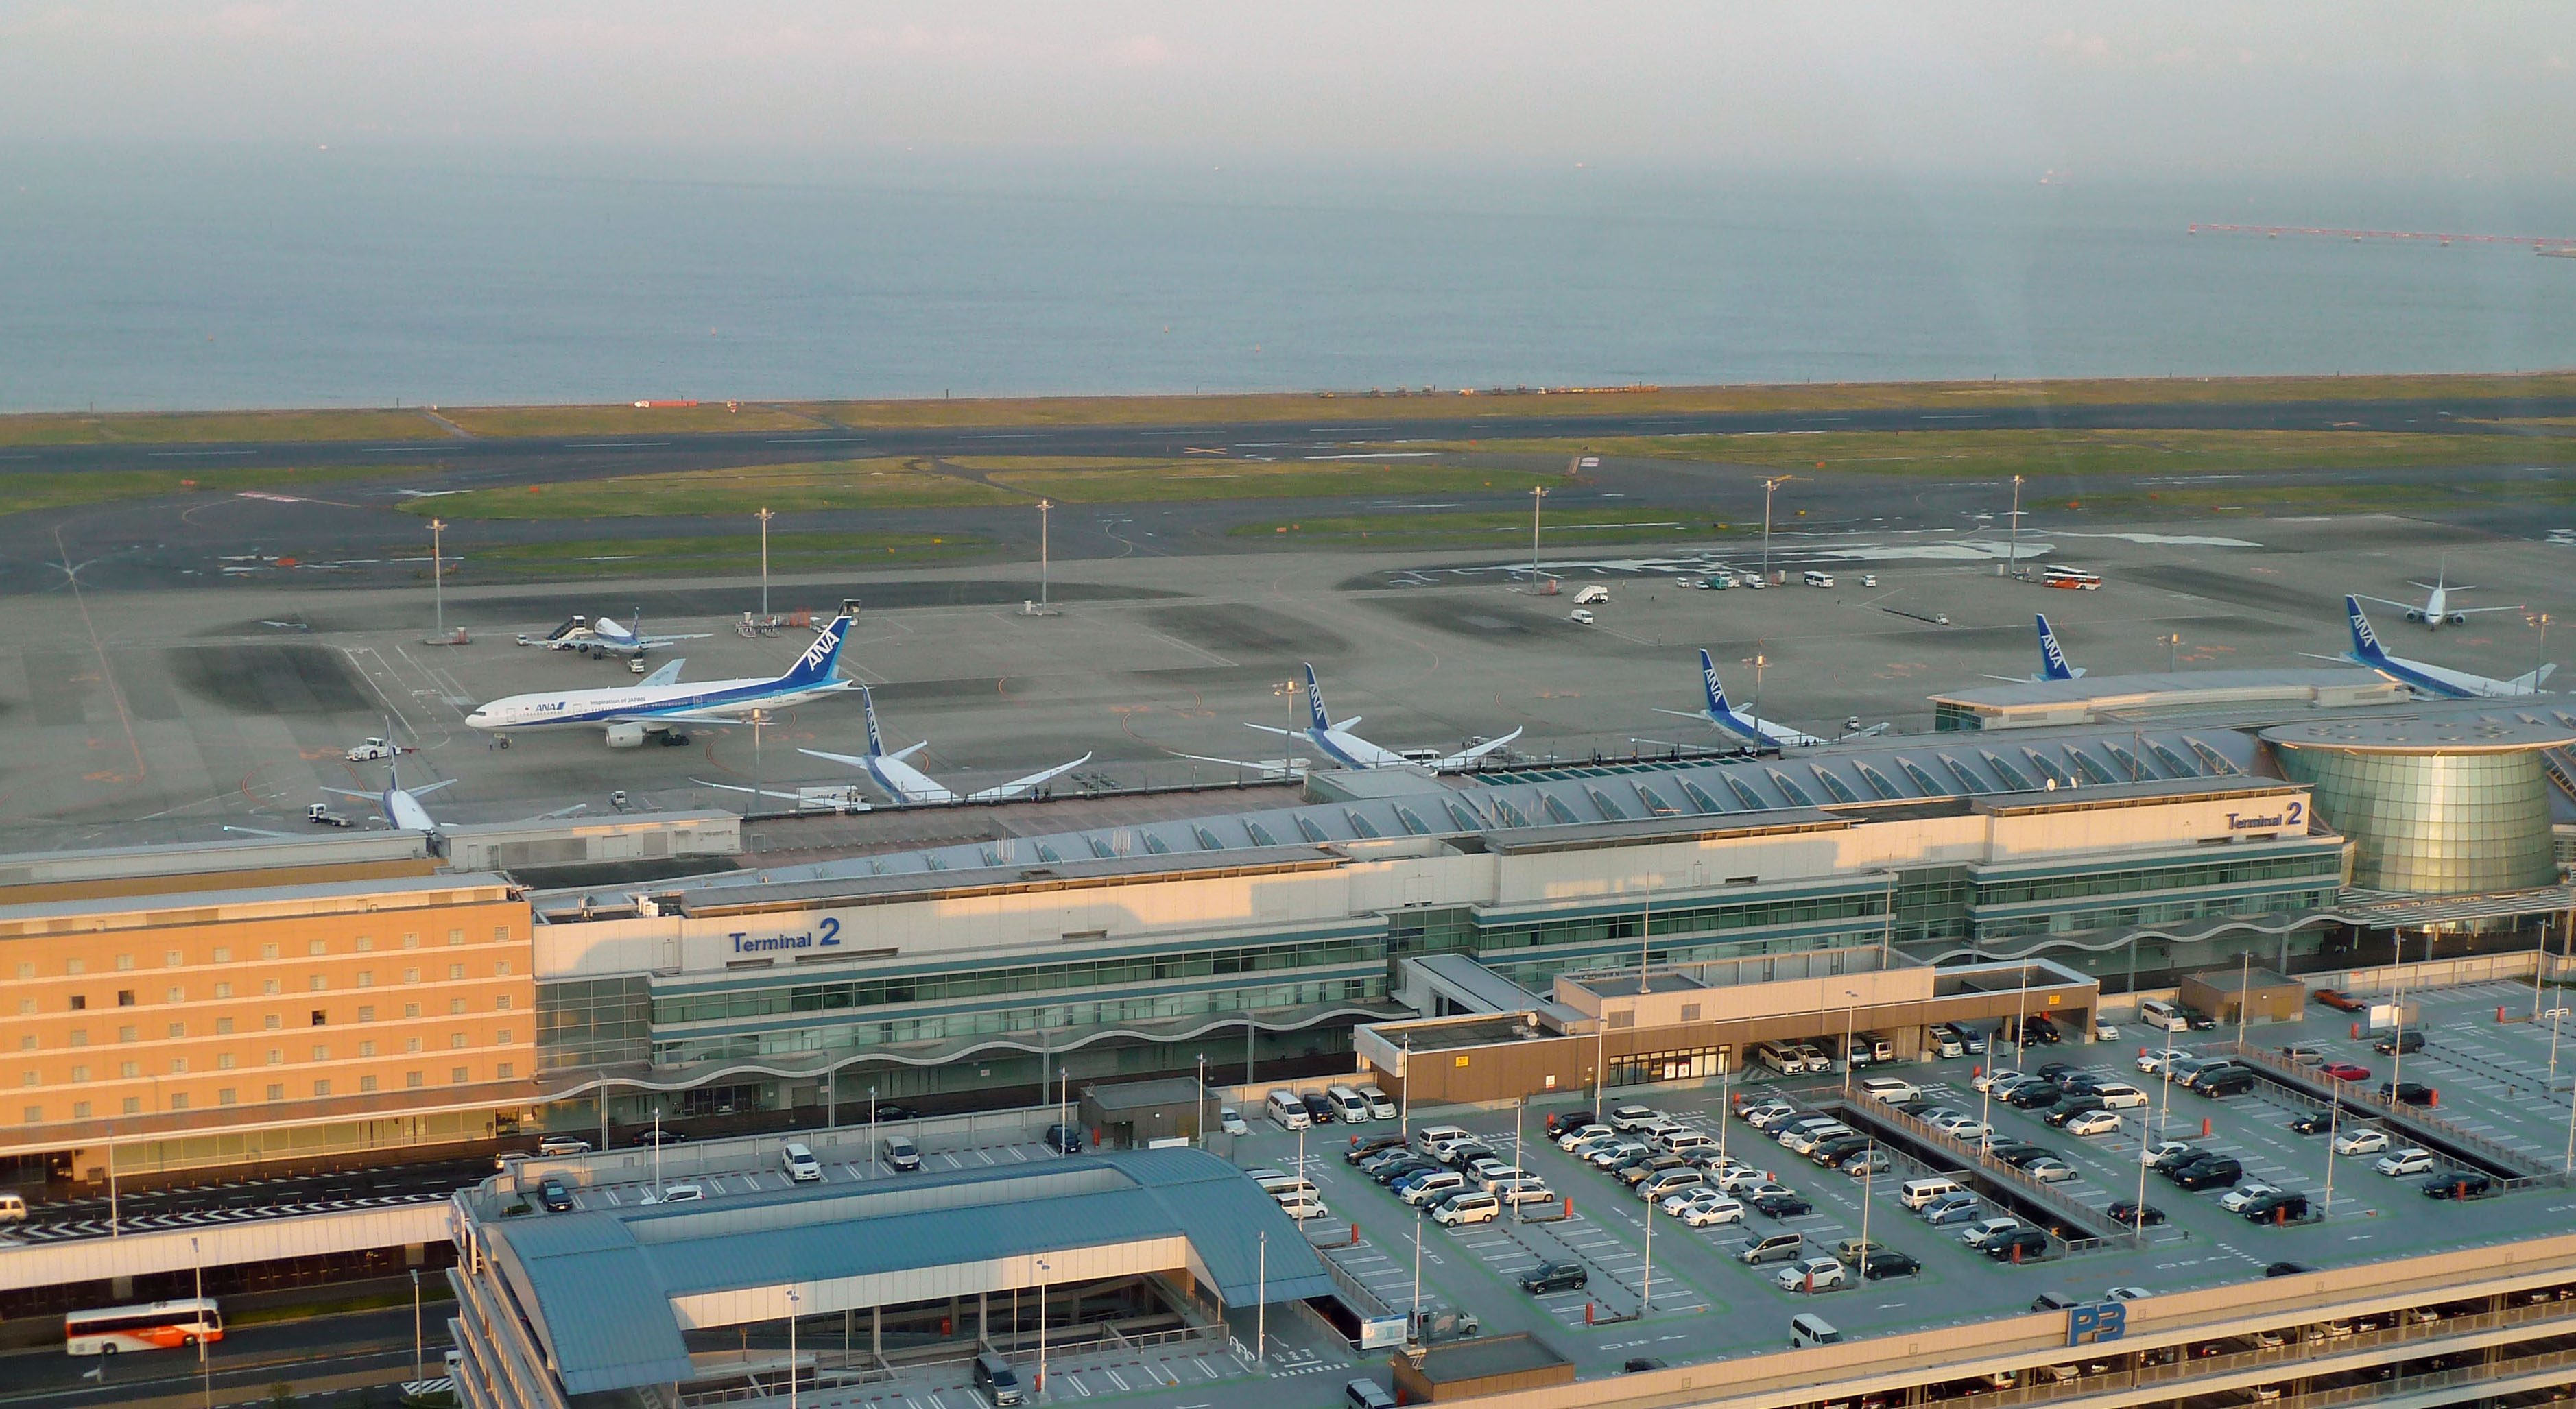 Terminal 2 at Haneda airport in Tokyo is viewed from the control tower on Oct. 21.   KYODO